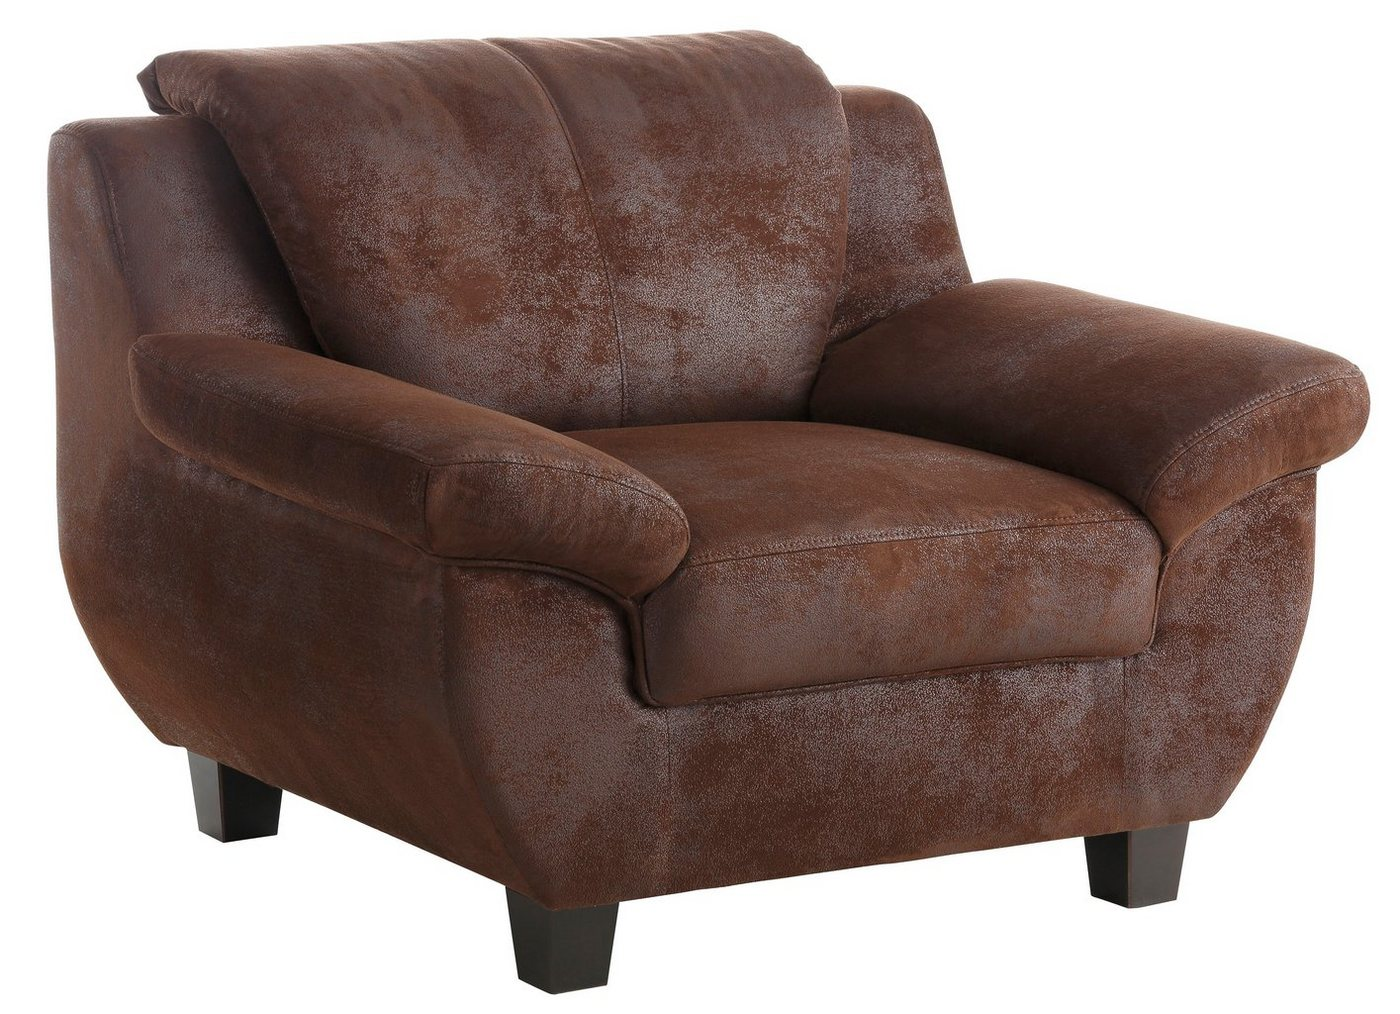 HOME AFFAIRE Fauteuil in 2 bekledingskwaliteiten